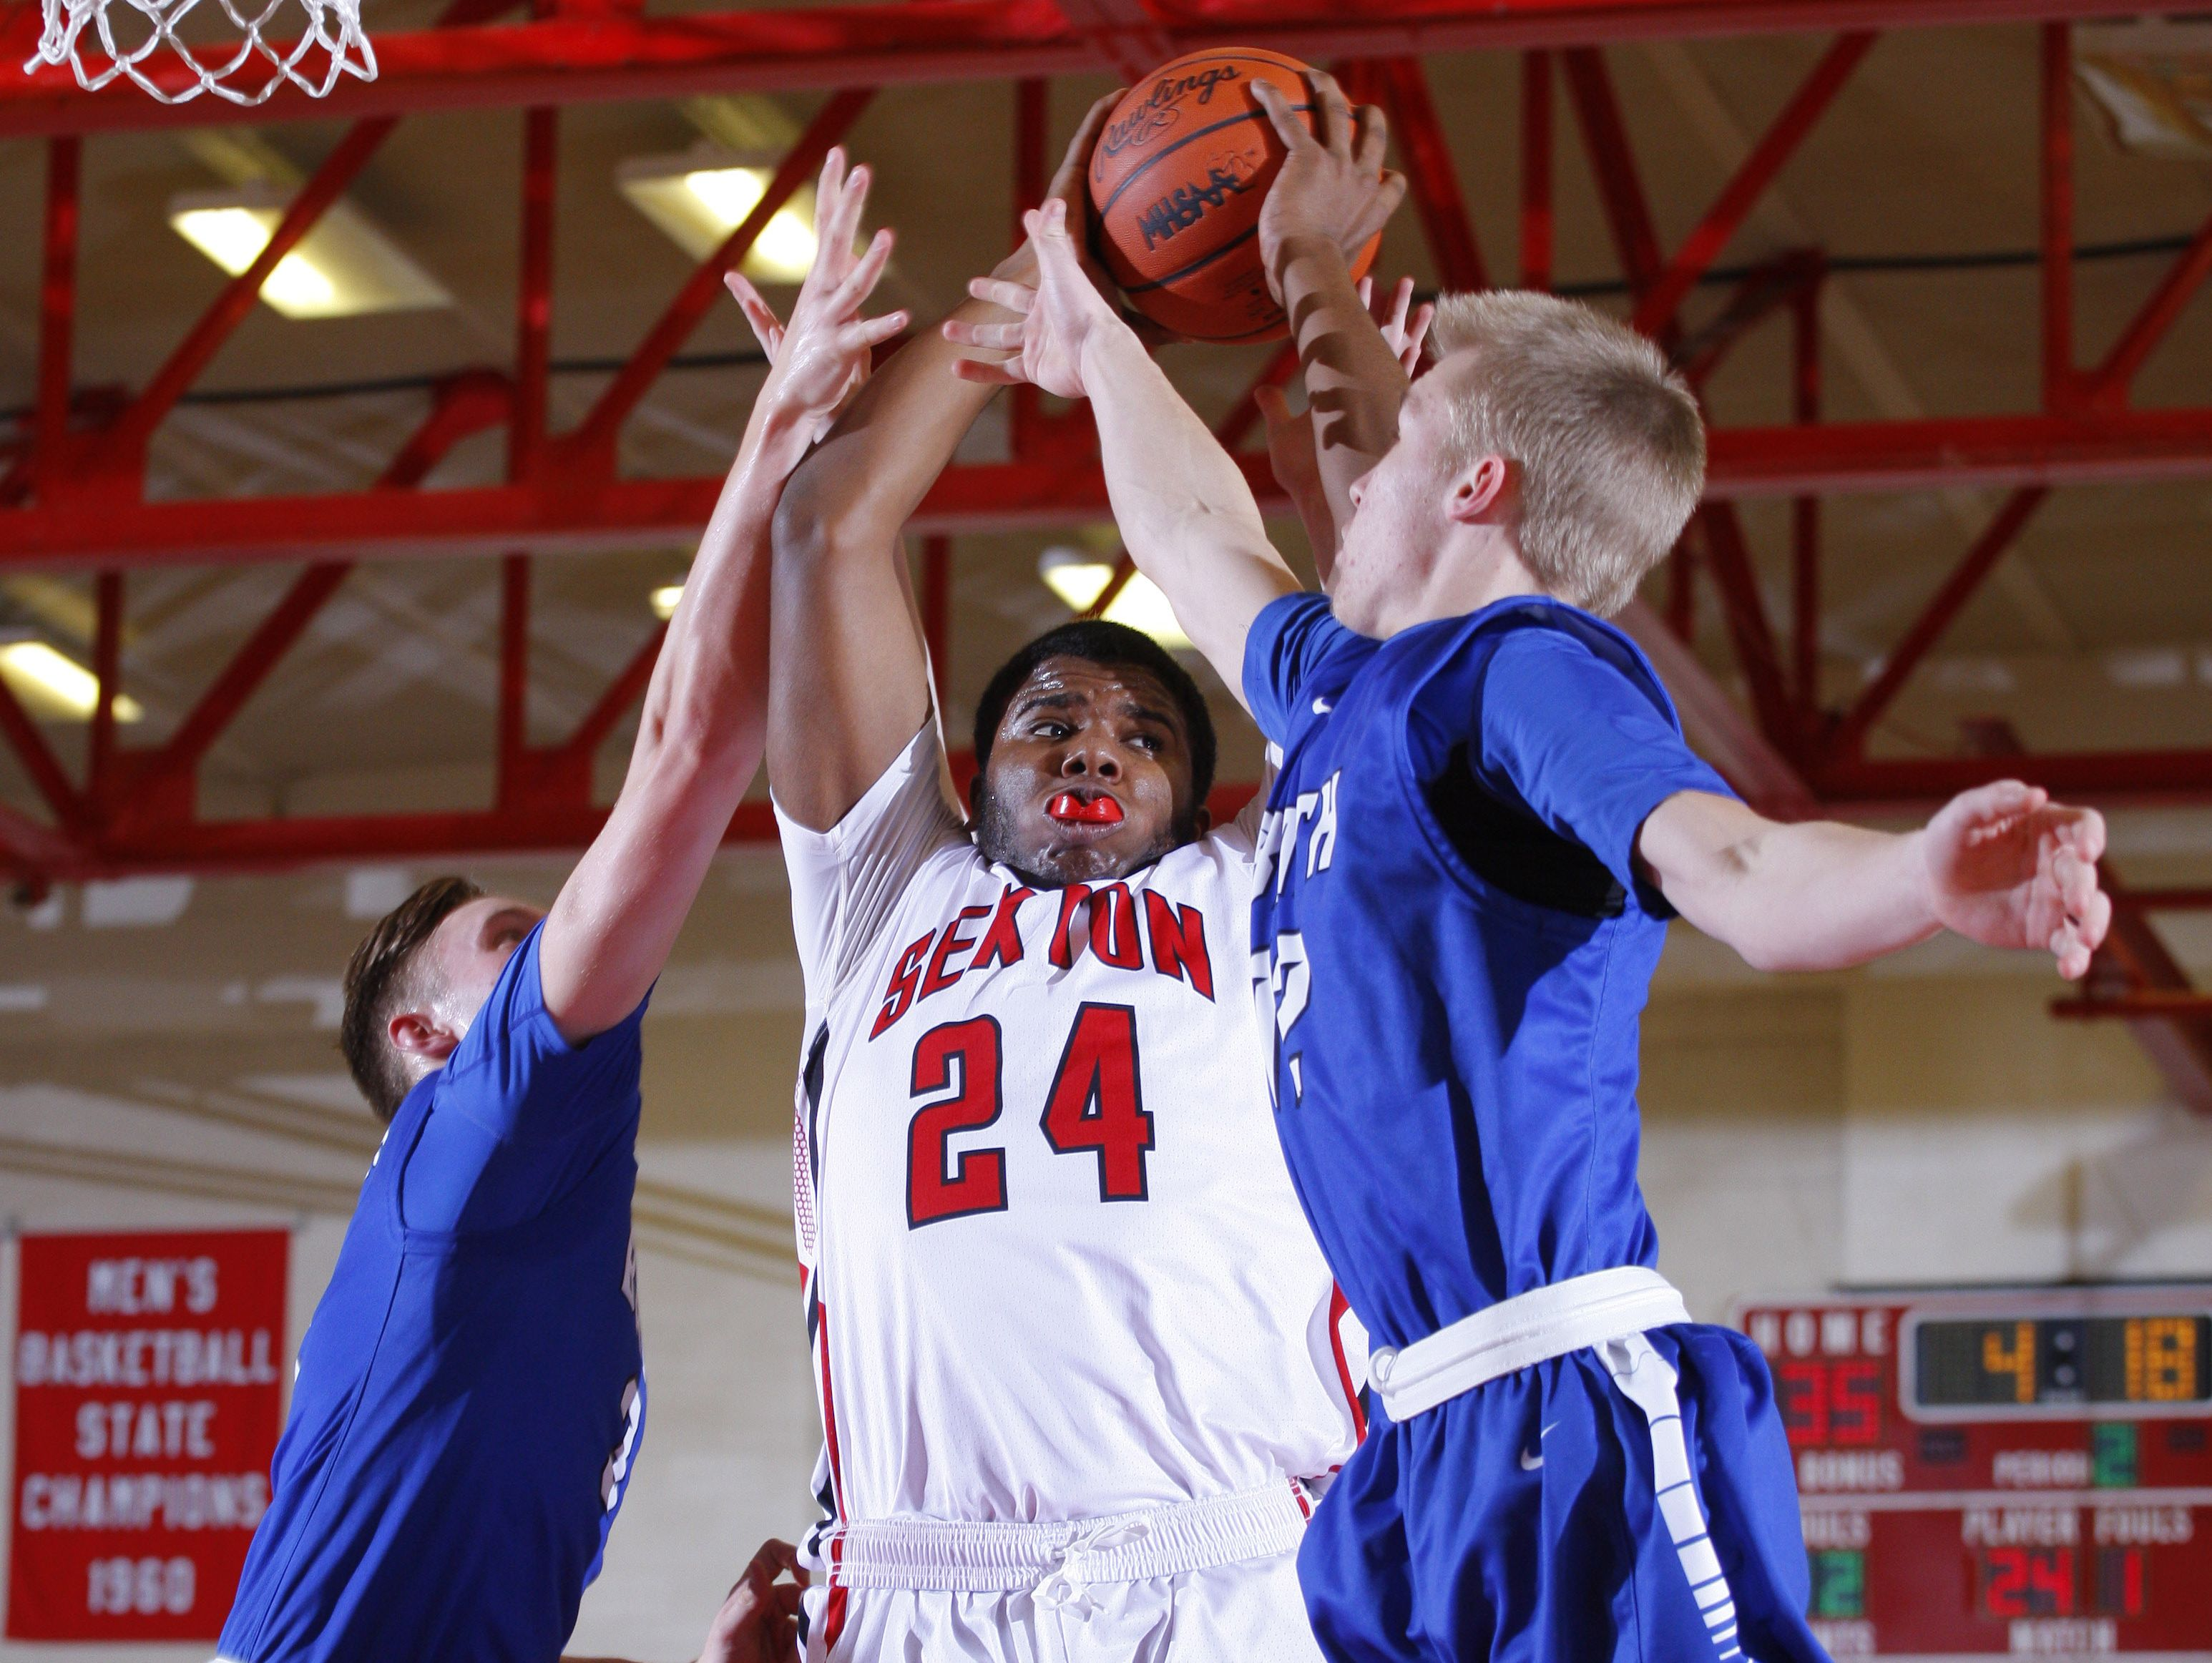 Sexton's D'Carlo Manuel (24) and Bath's Max Tiraboschi, left, and Jacob Deveau, right, vie for a rebound Tuesday, Feb. 7, 2017, in Lansing, Mich. Sexton won 82-39.